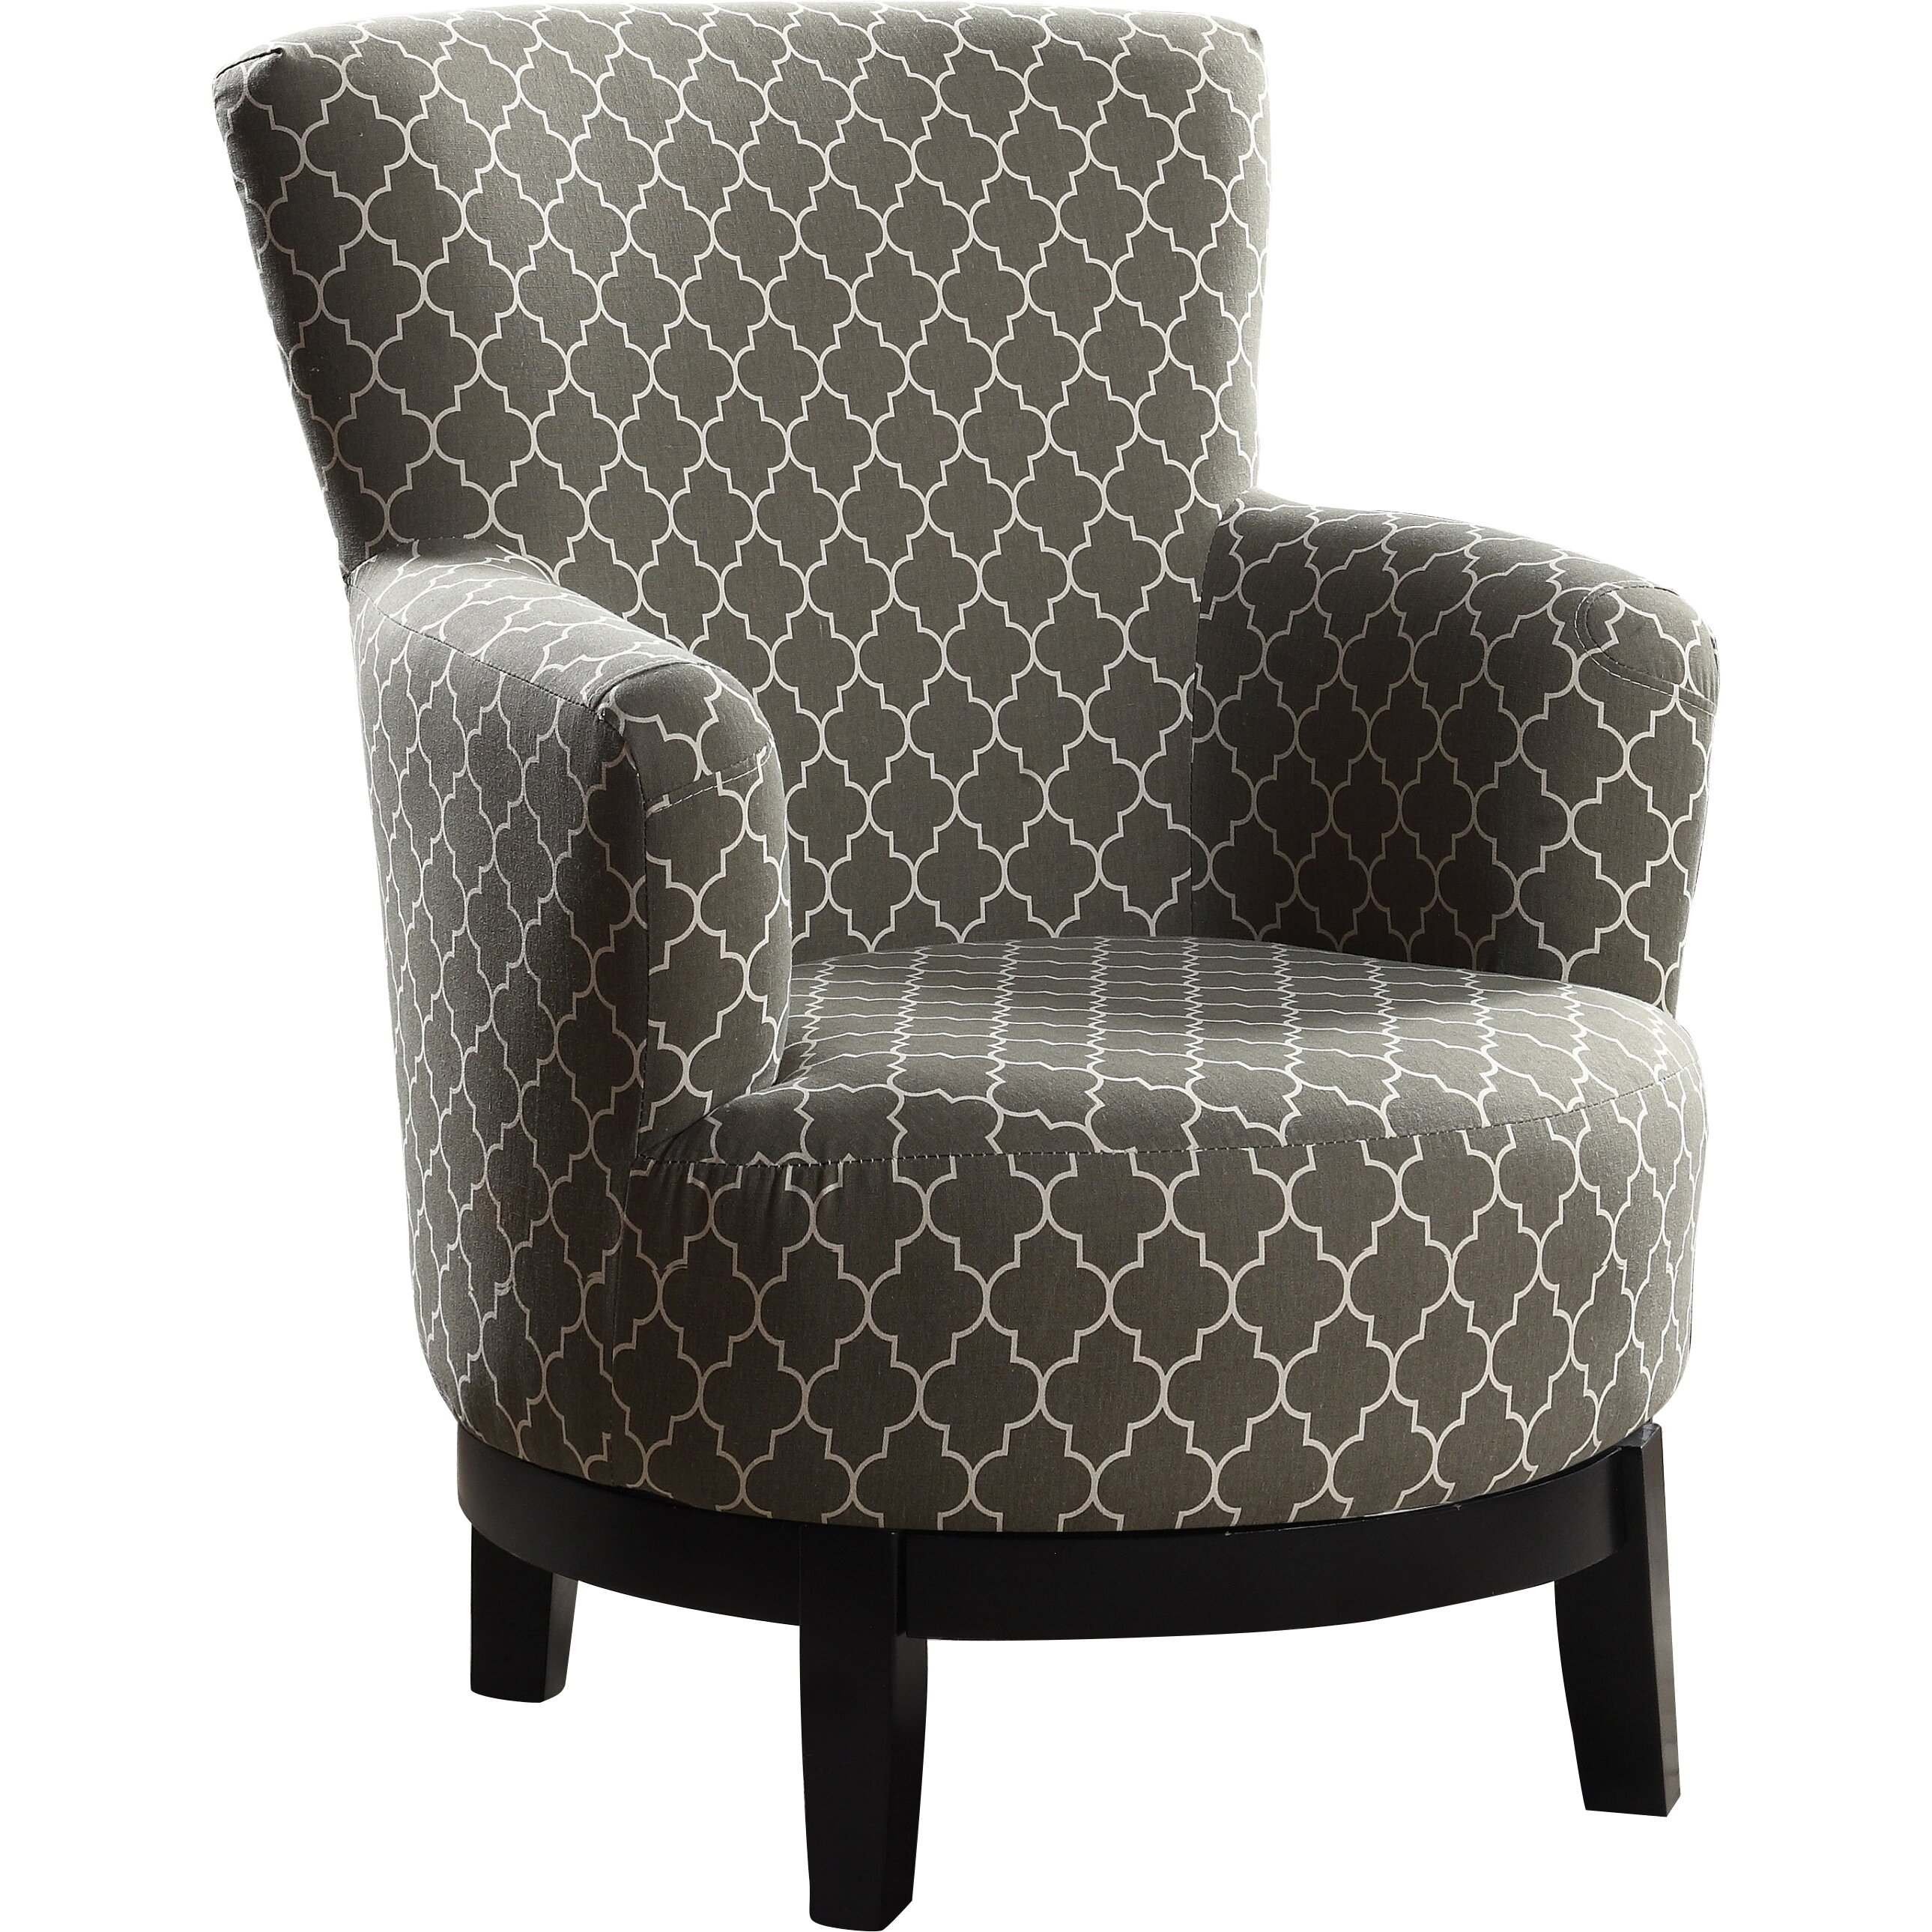 Nathanielhome london swivel arm chair reviews wayfair for Swivel accent chairs with arms